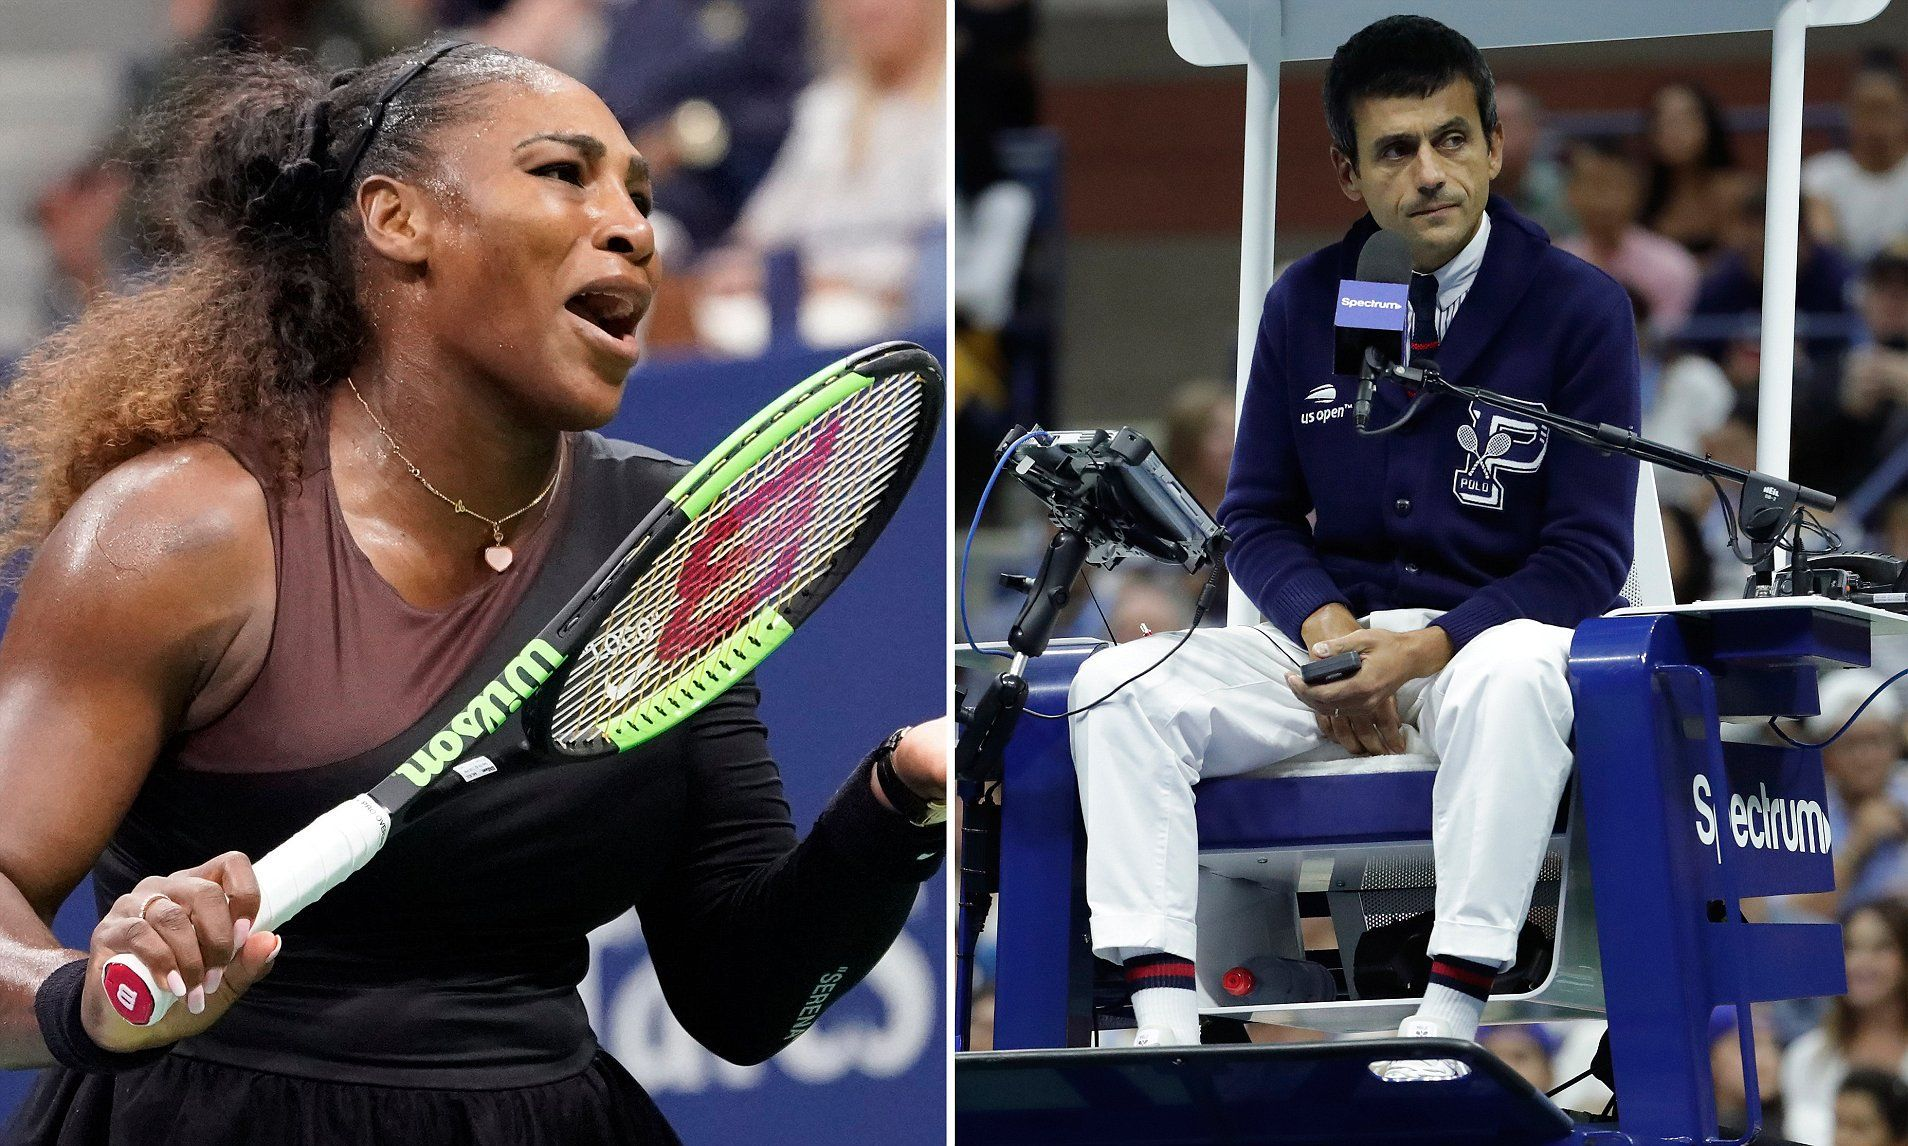 Us Open 2019 Serena Williams Issues With Umpire Carlos Ramos And Rematch With Naomi Osaka Serena Williams Tennis Venus And Serena Williams